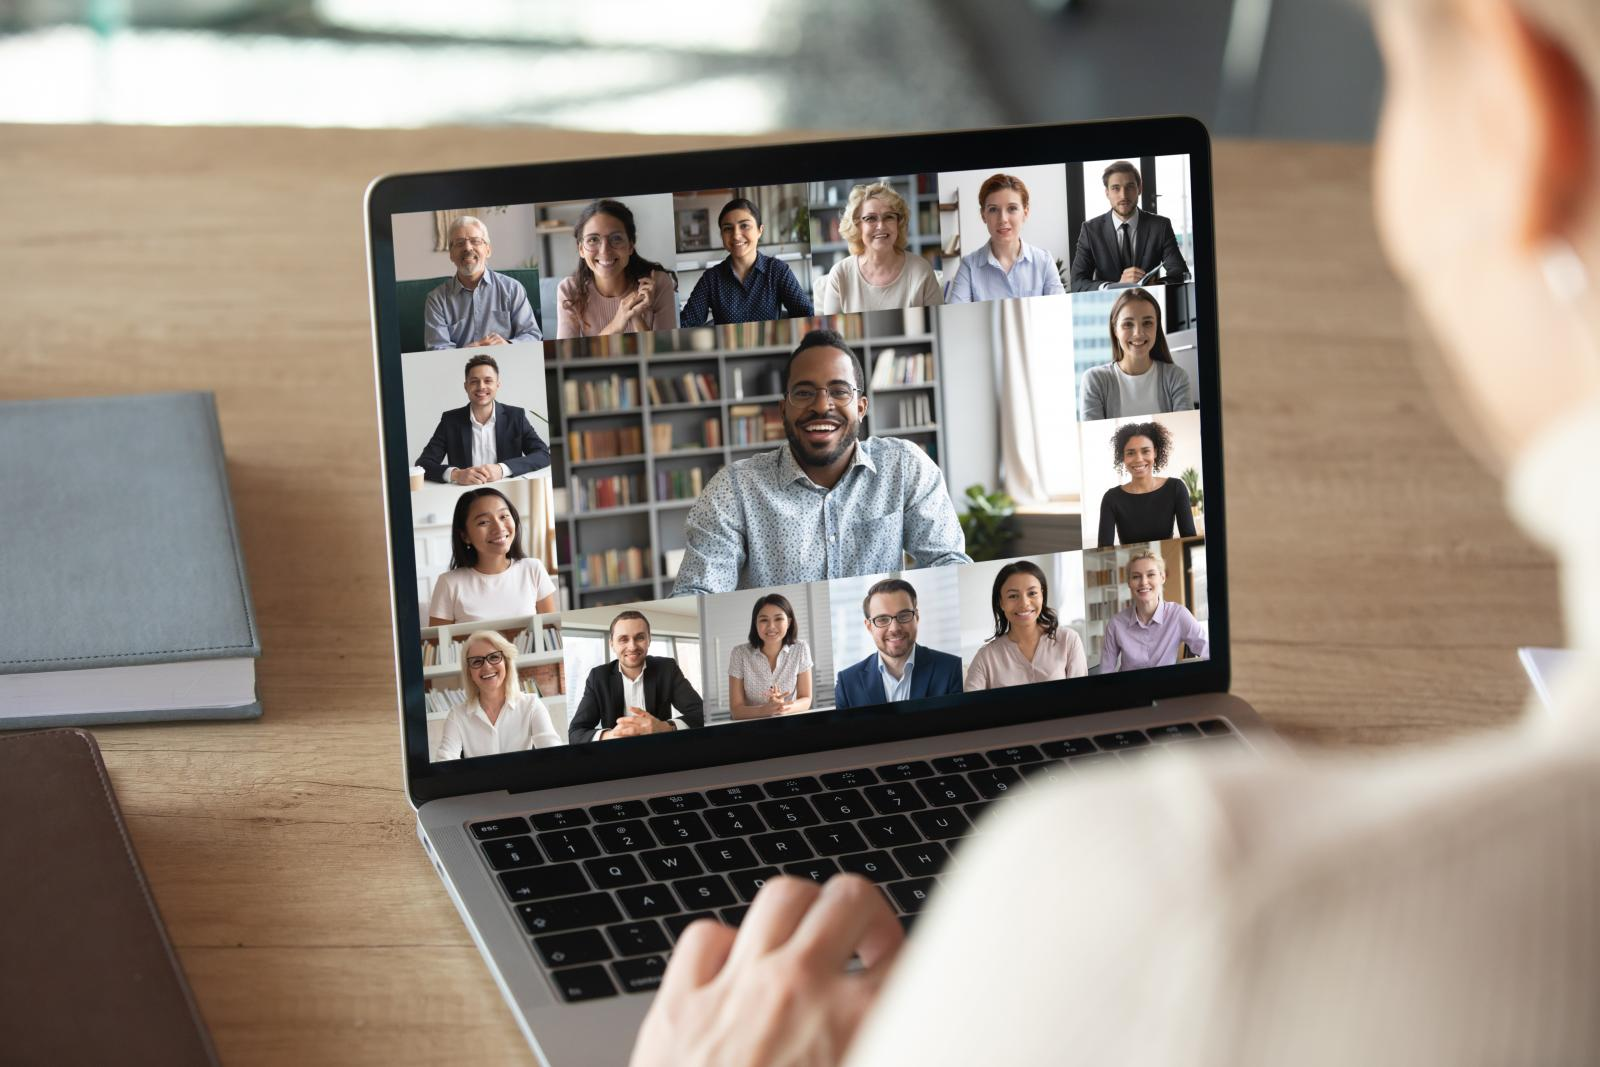 Covid leads agents to want more facilities for remote working